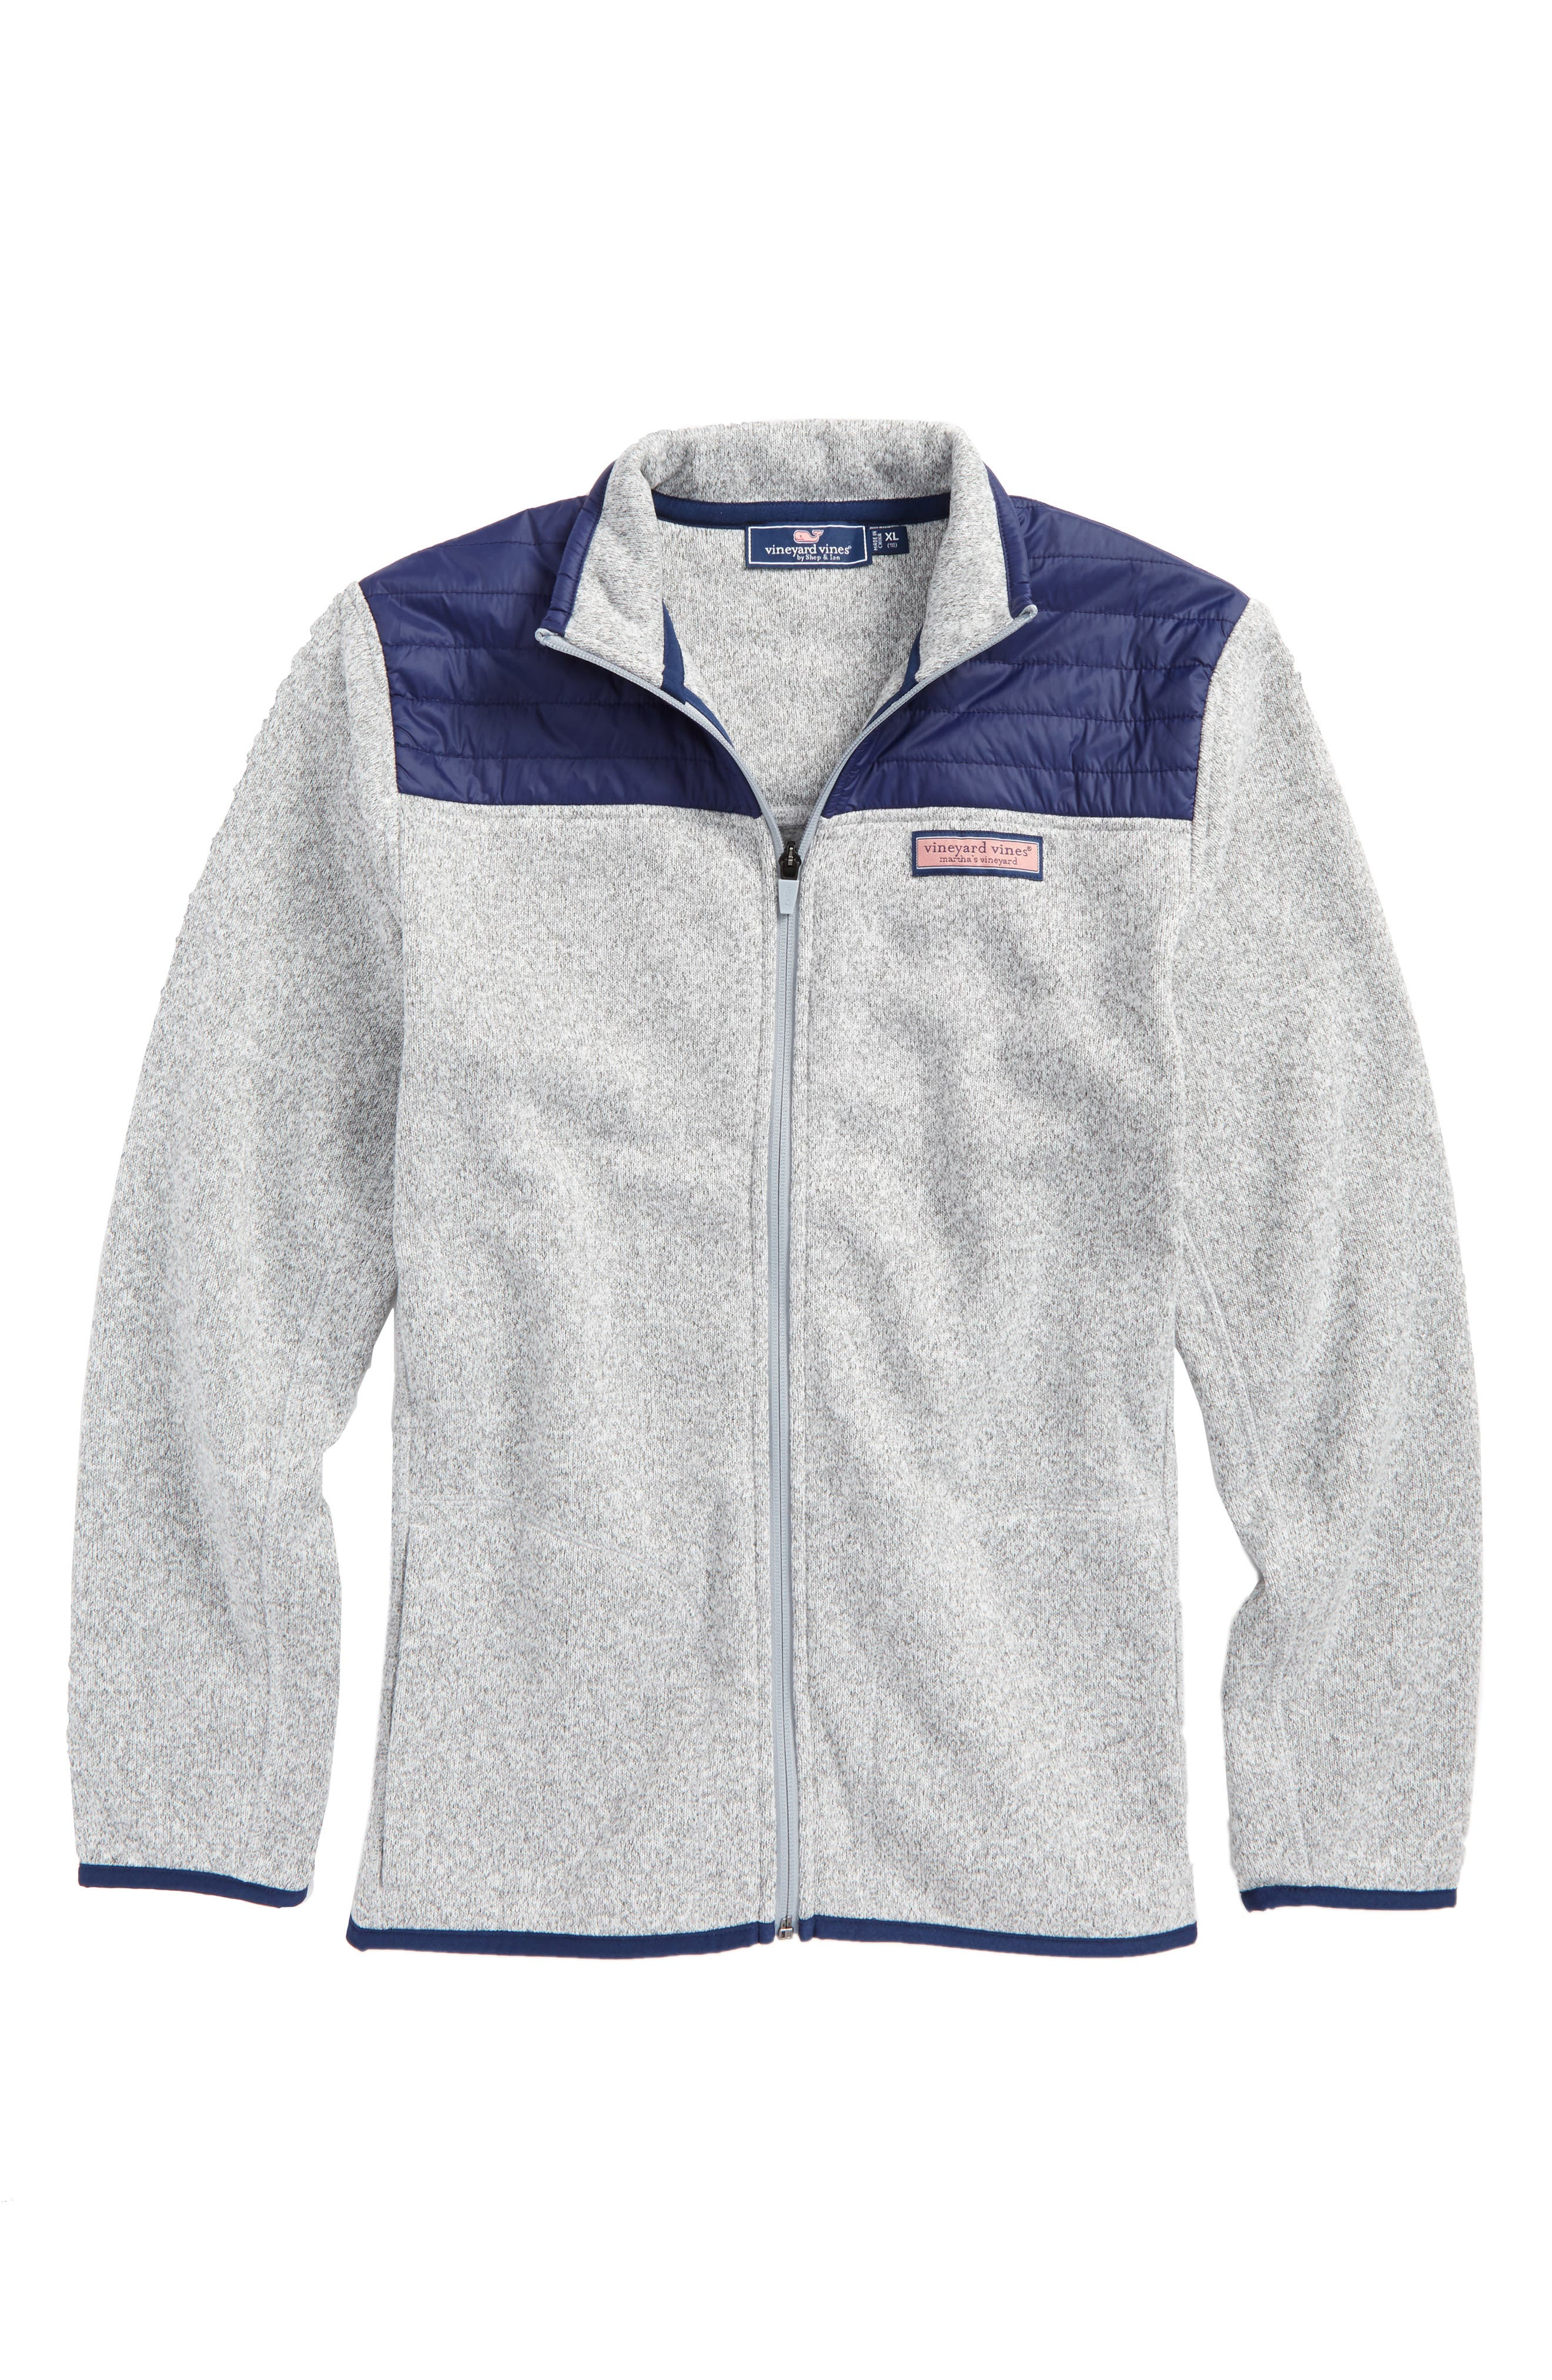 vineyard vines Full Zip Fleece Jacket (Big Boys)